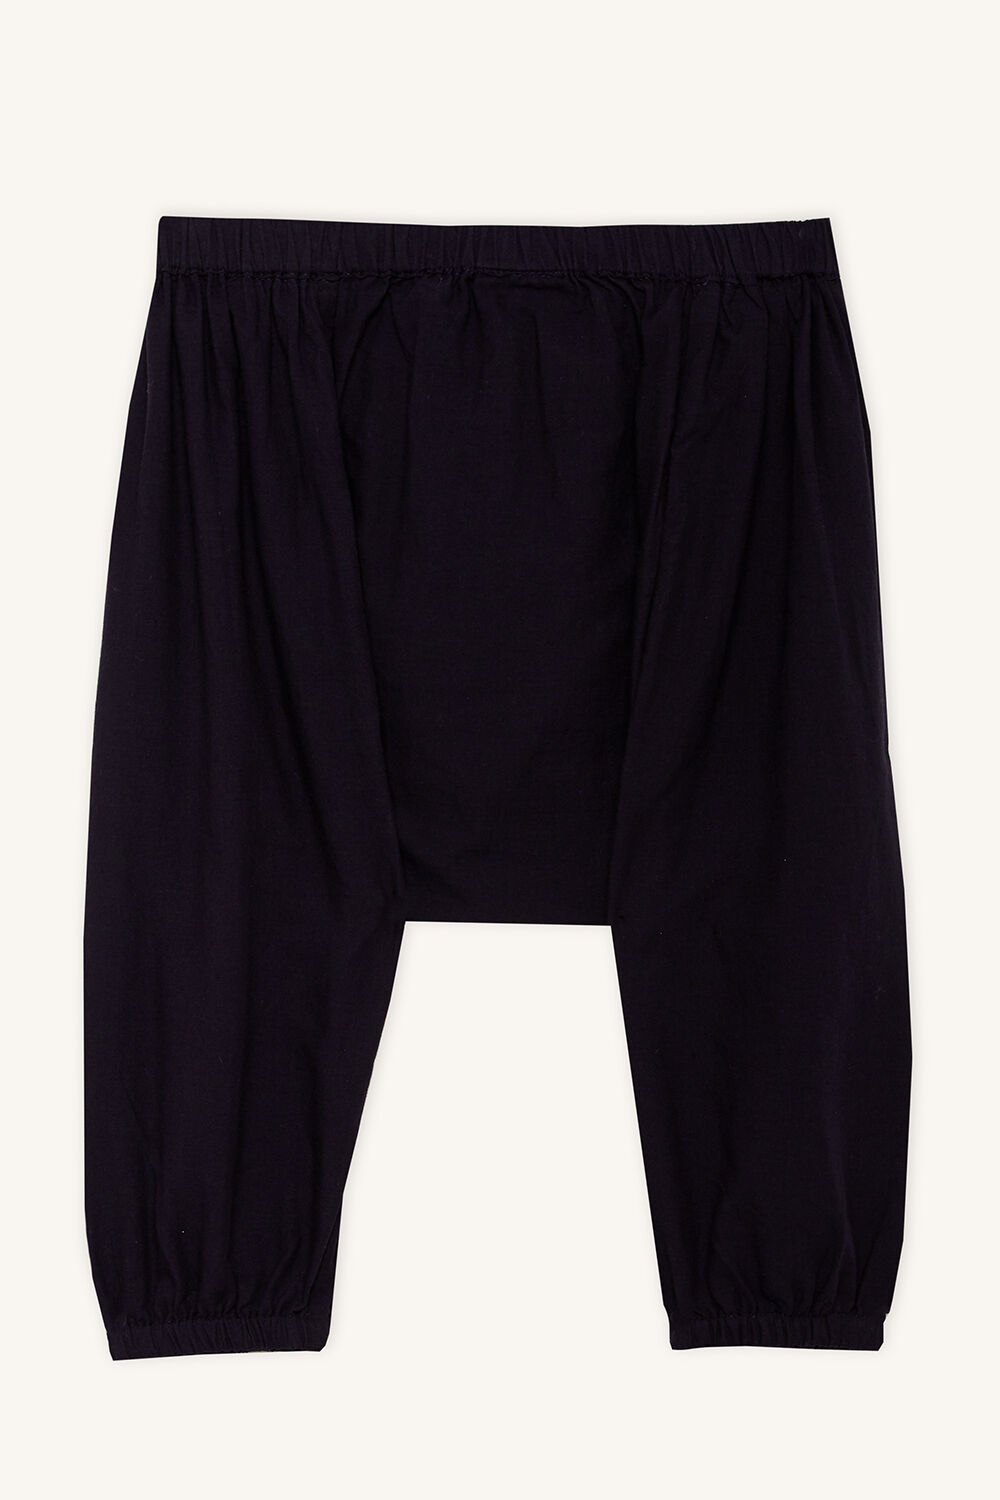 EDEN HAREM PANT in colour PEACOAT